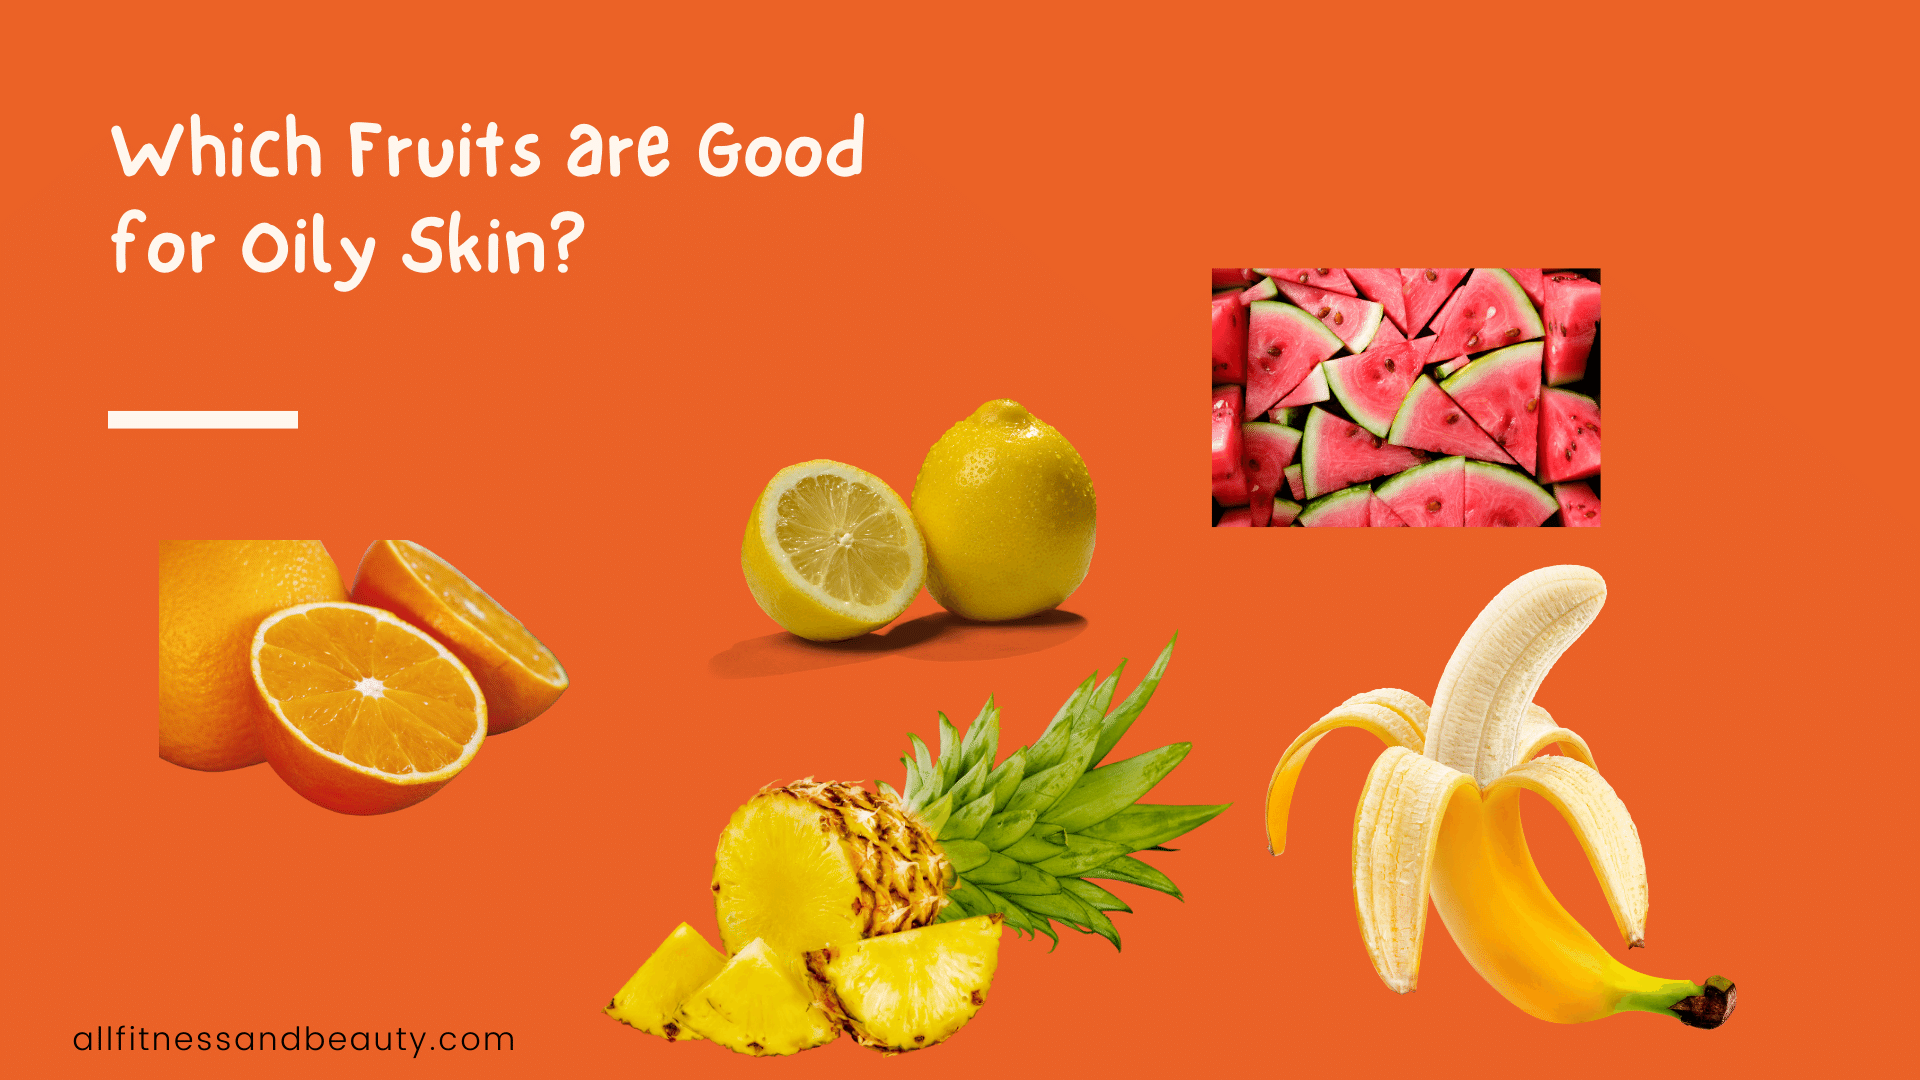 Which Fruits are Good for Oily Skin